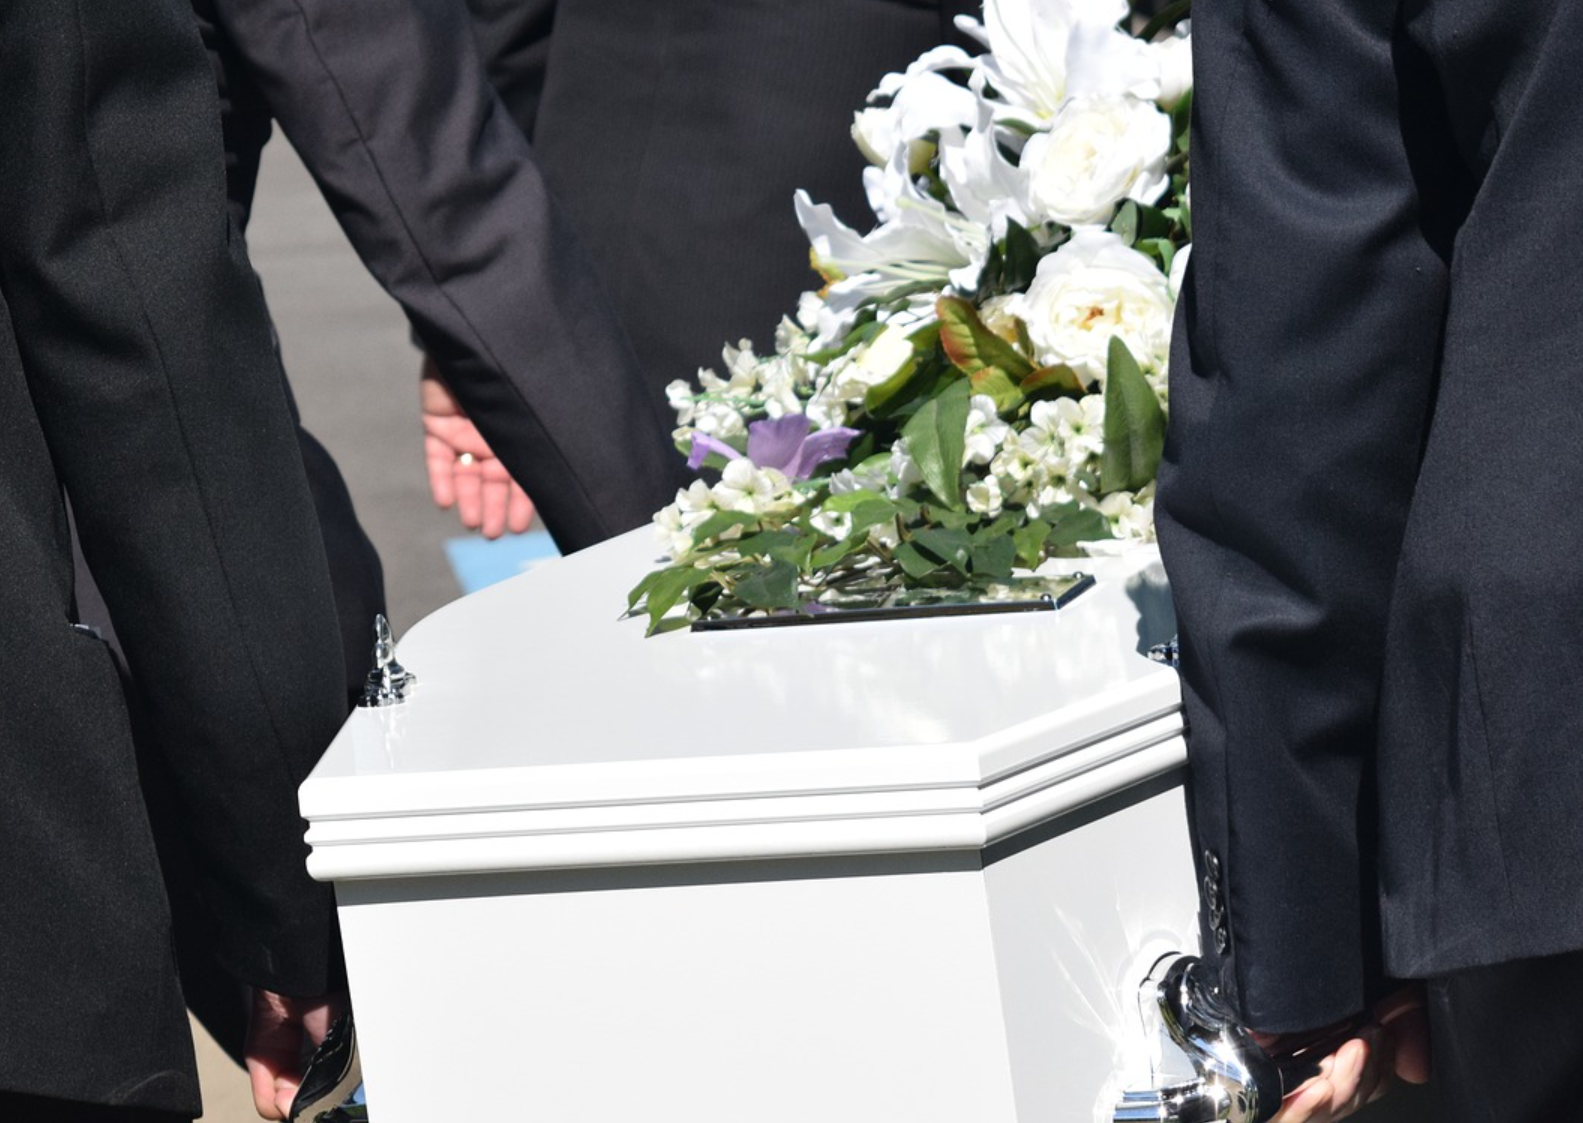 wrongful death claim carrying white casket